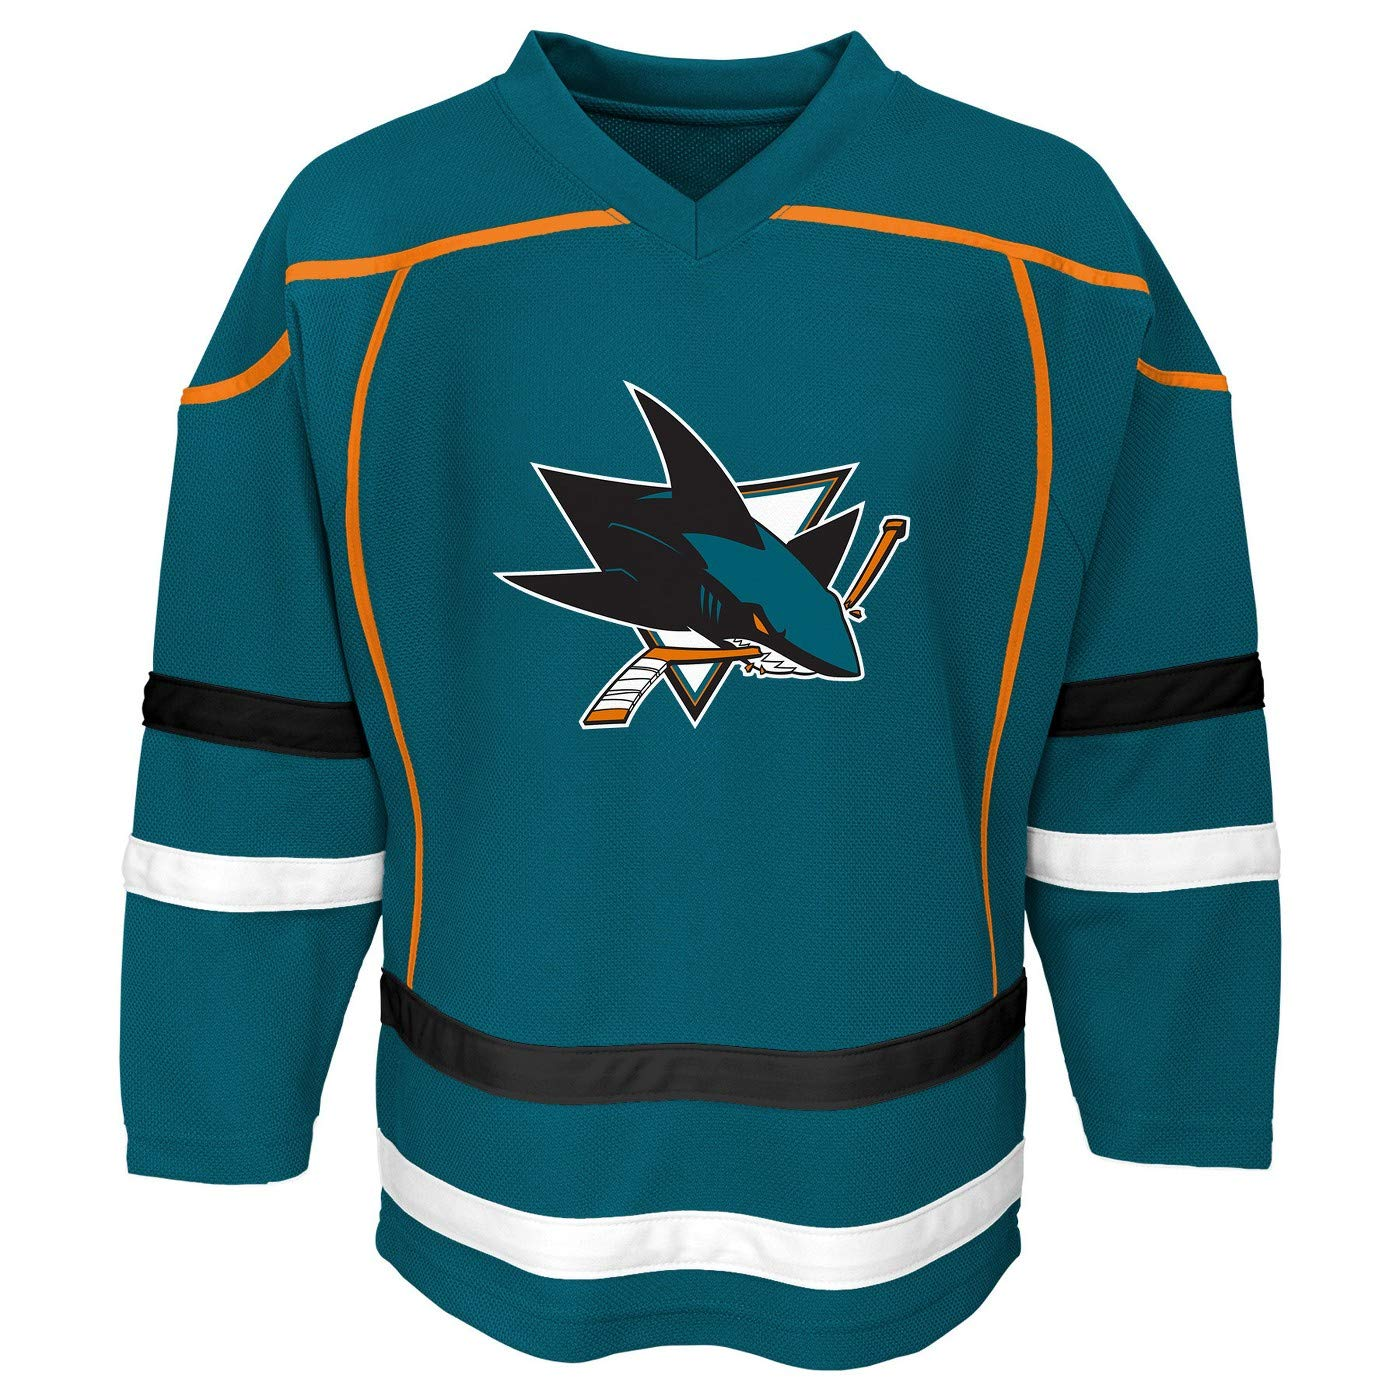 new style d34ce f17dc Boys Brent Burns San Jose Sharks #88 Teal Youth Replica Home ...